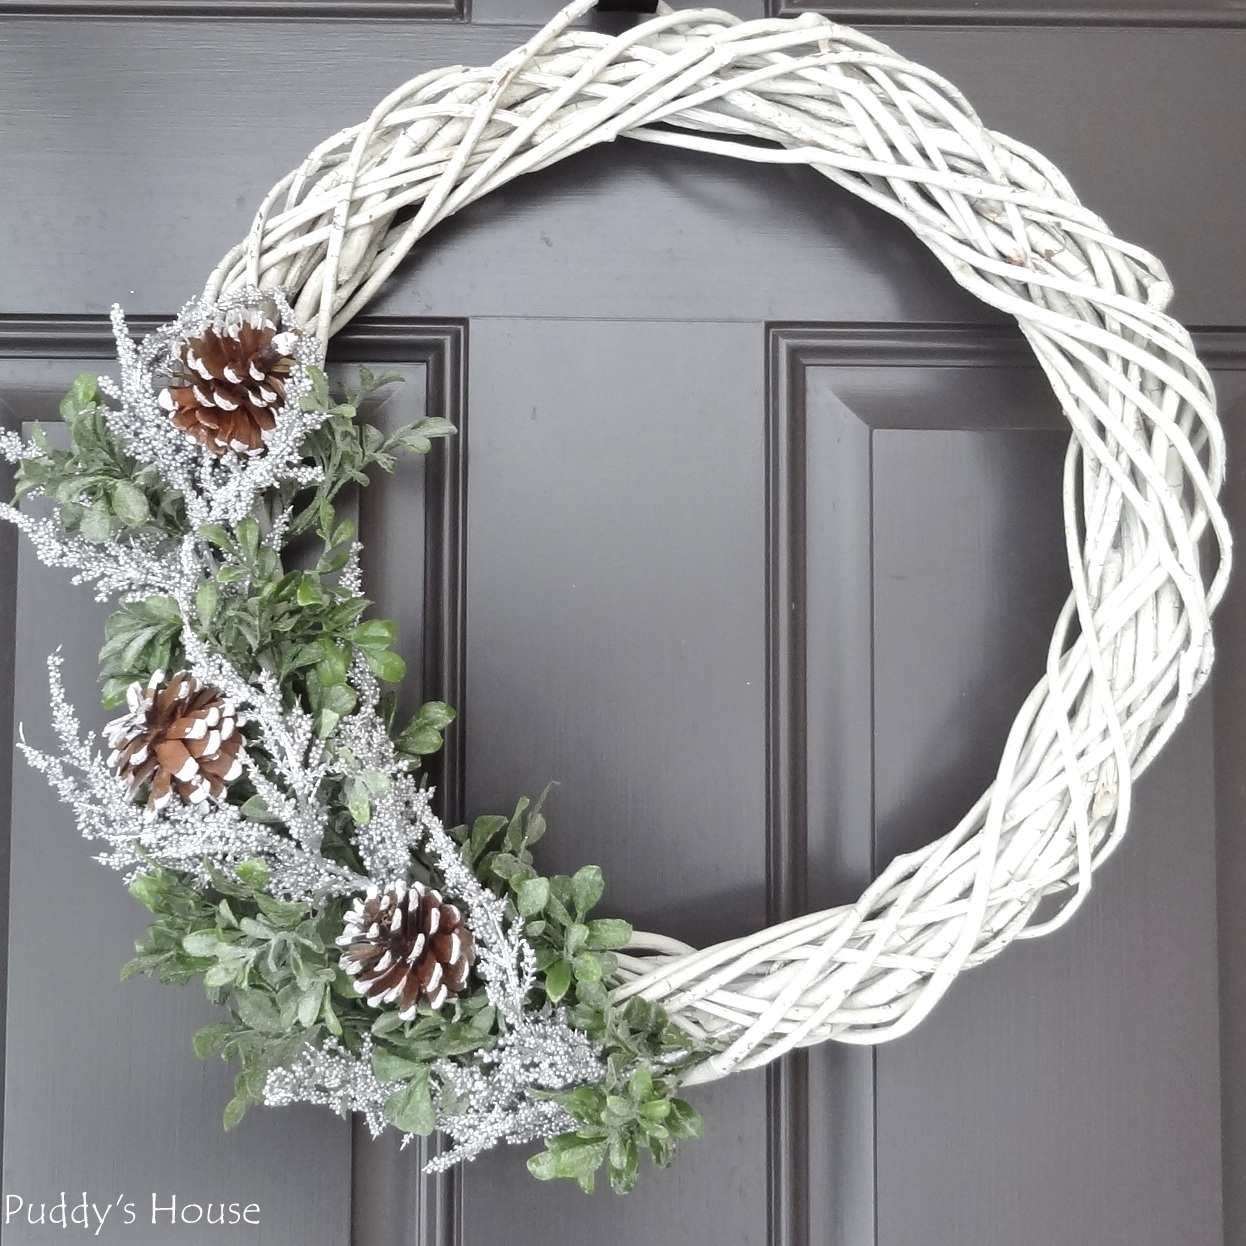 DIY Winter Wreath - complete in 3 easy steps